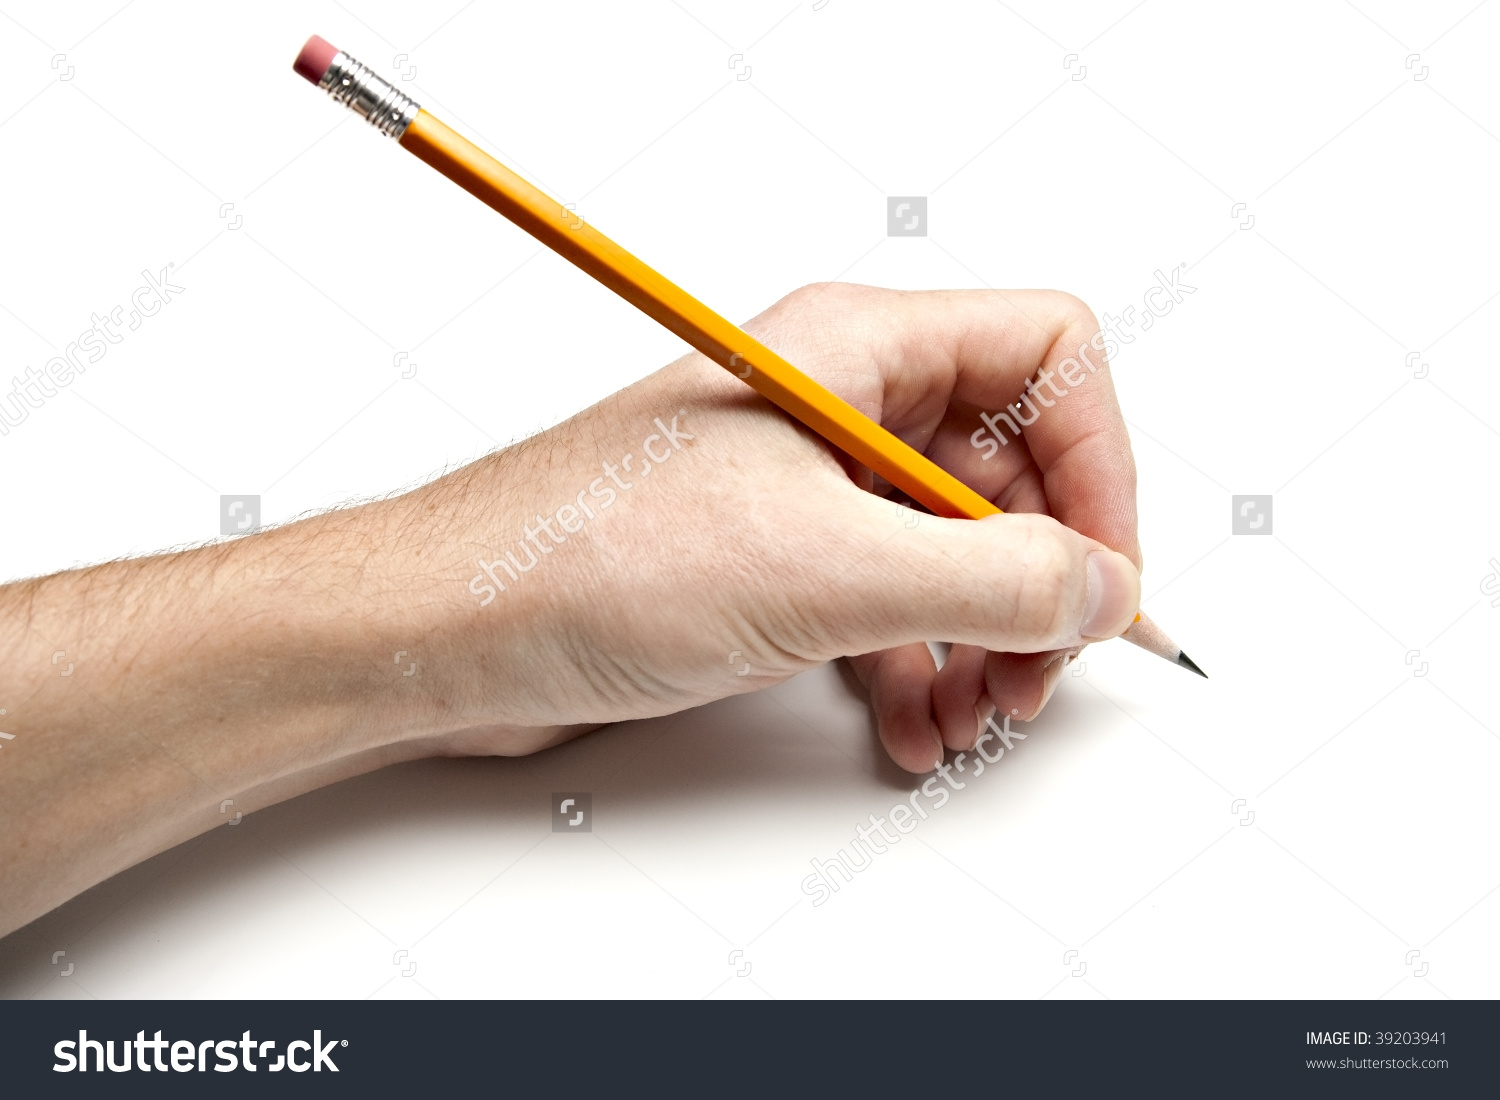 Left Hand Writing Clipart.